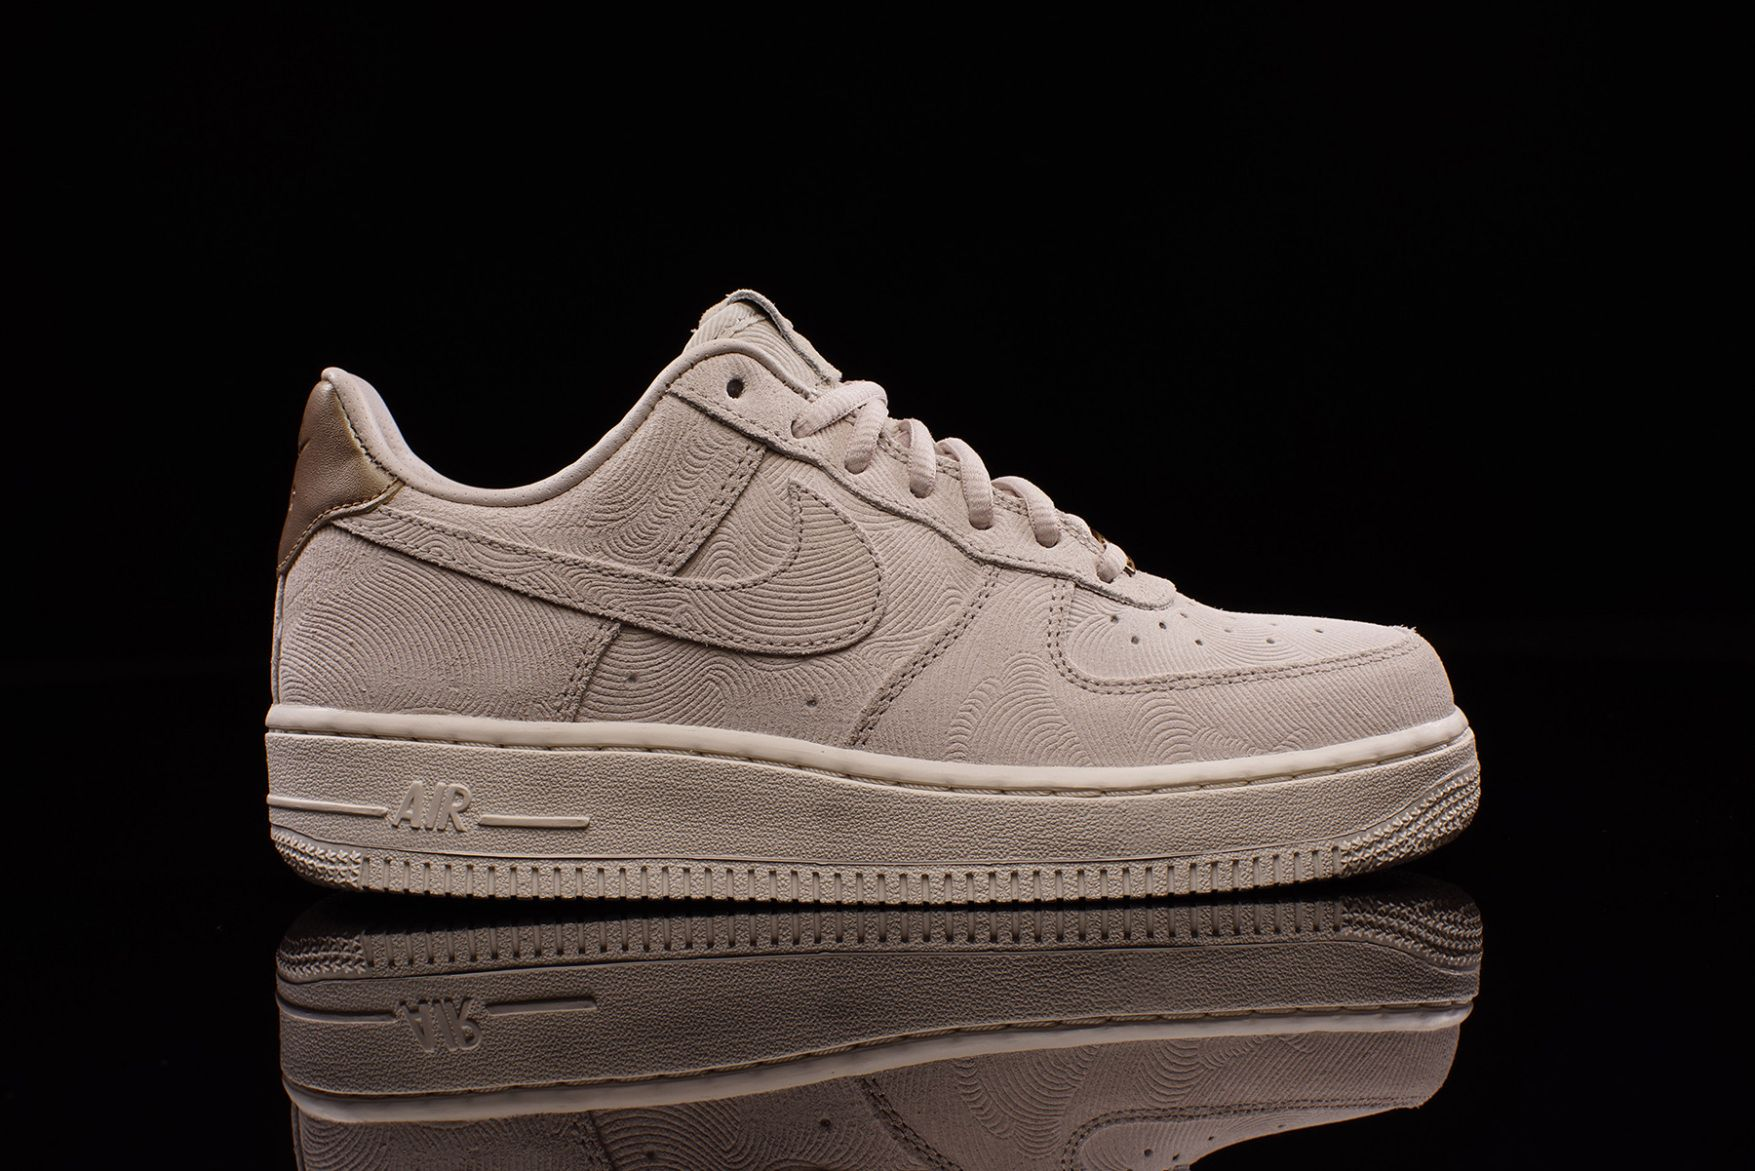 Nike Drops New Air Force 1 Low in Premium Suede Just for the